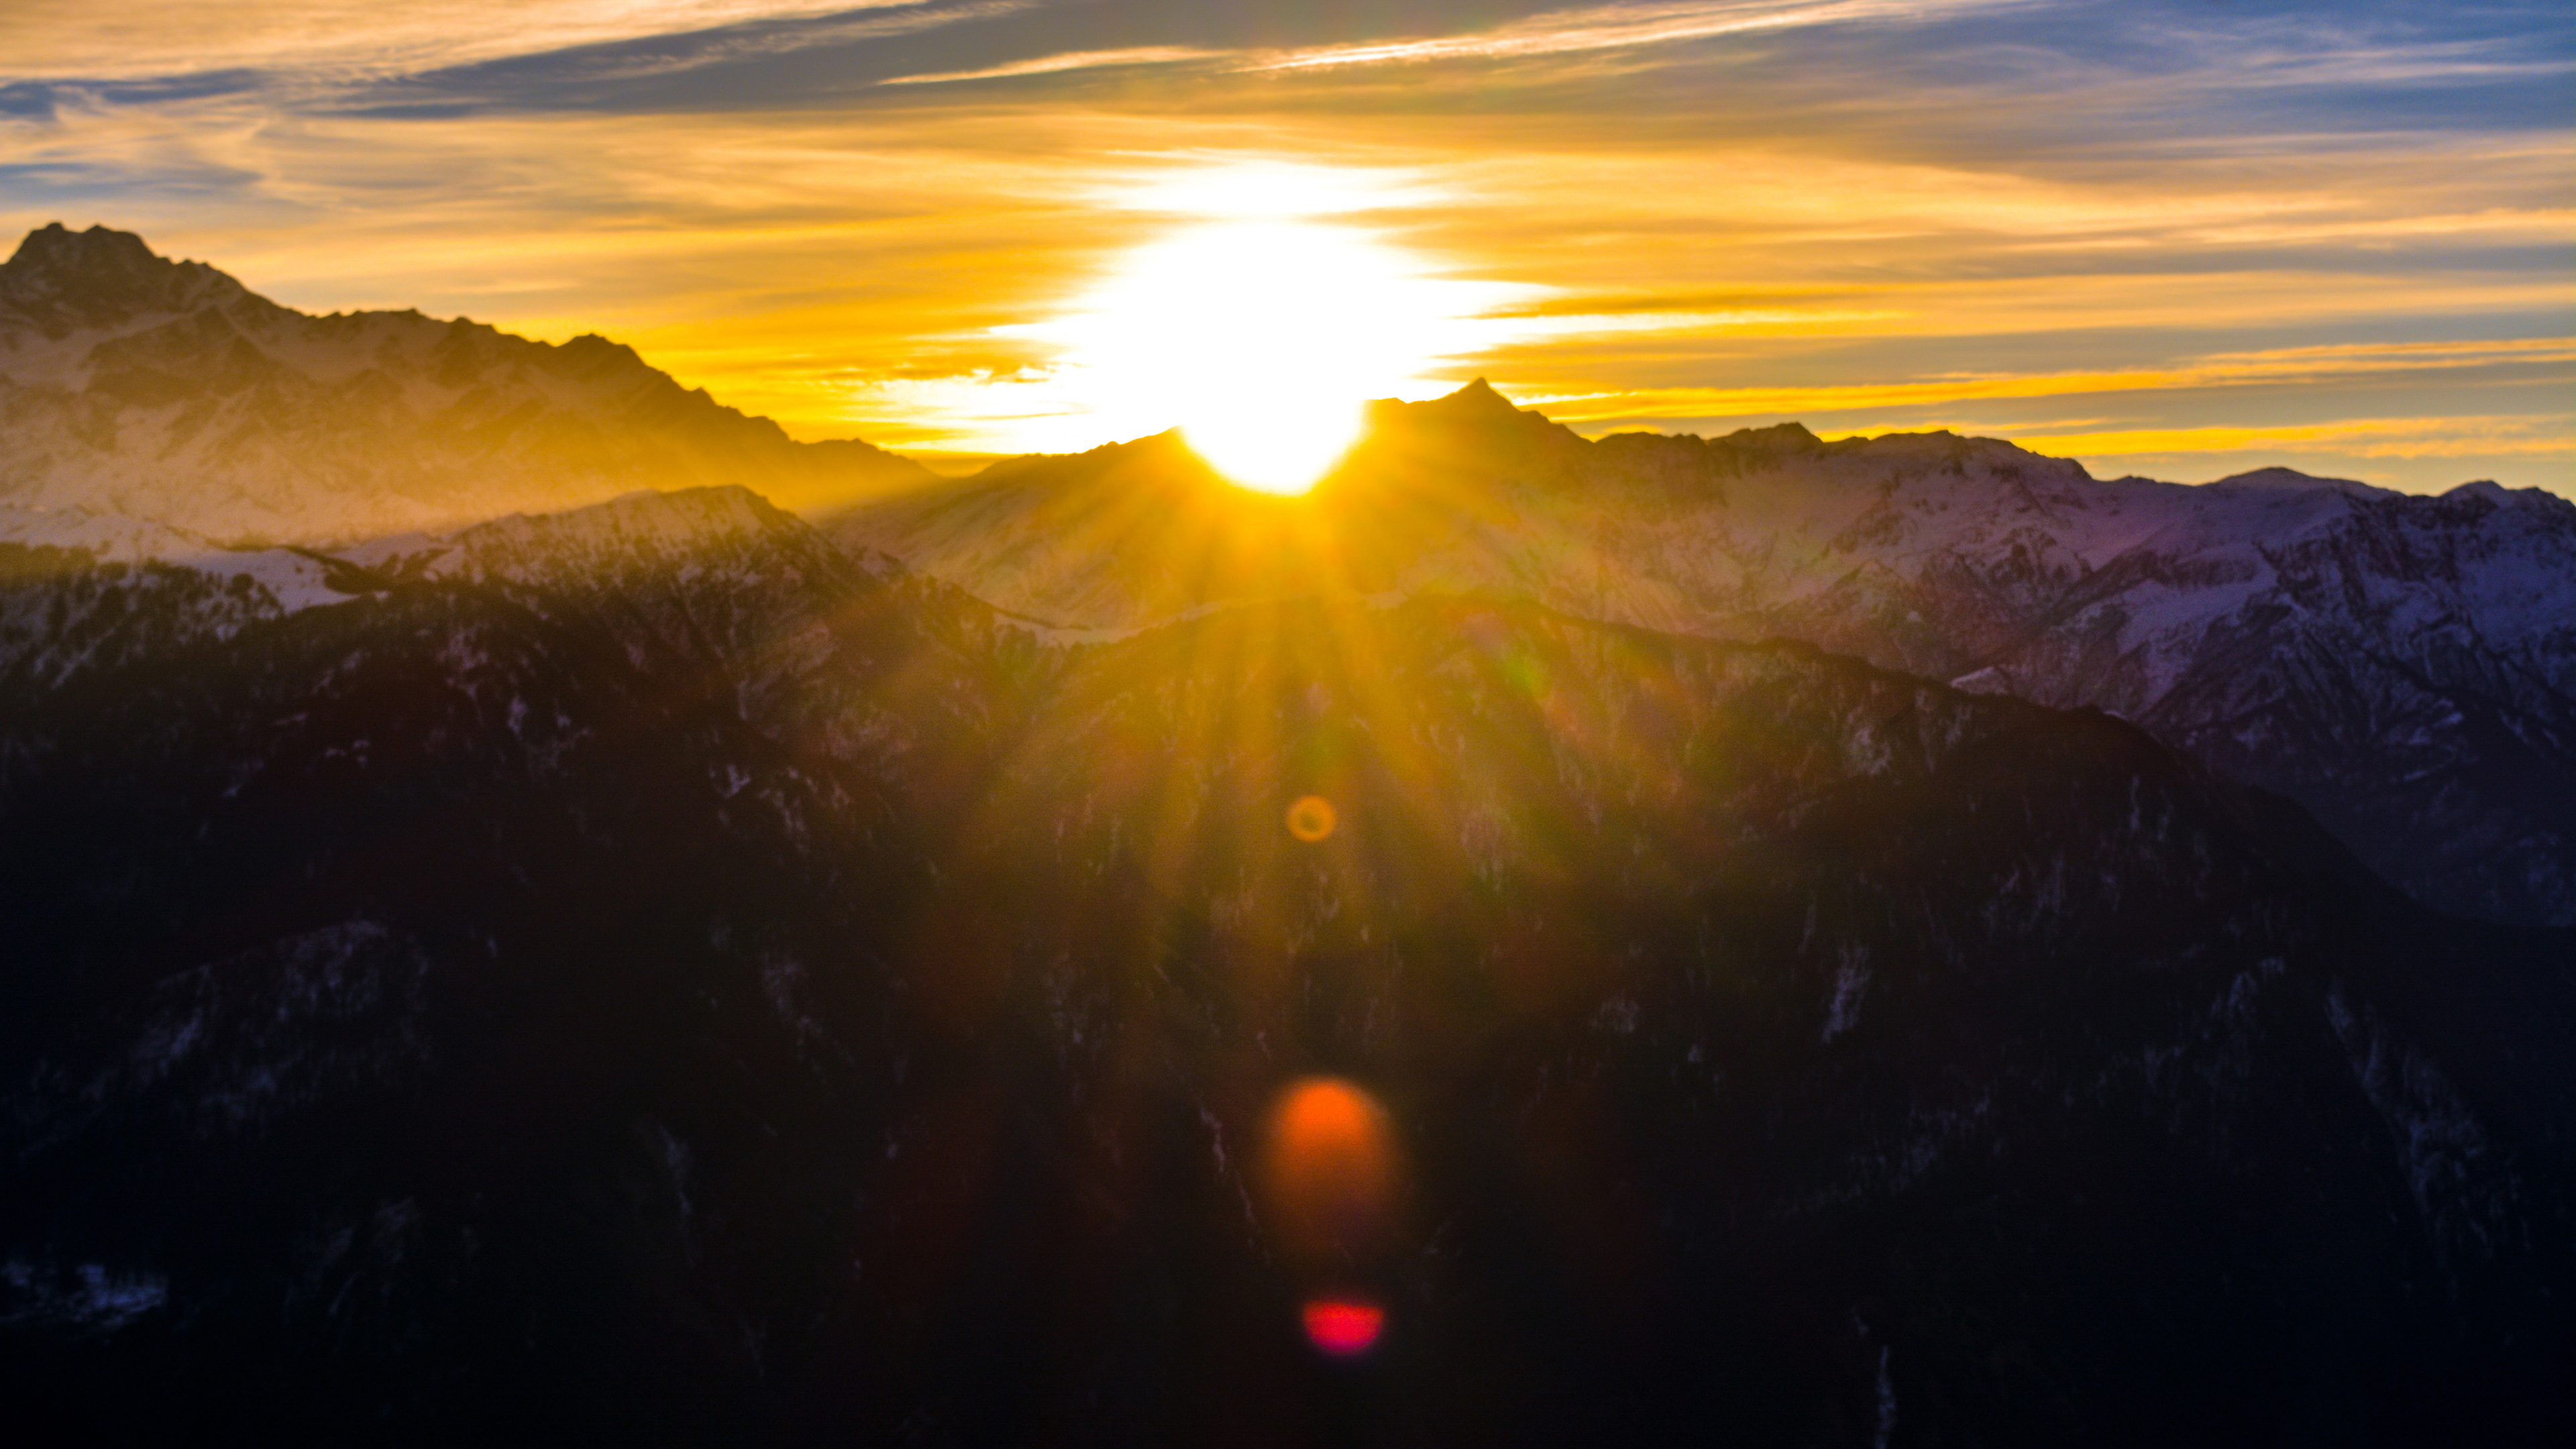 cool view of mountains durning sunrise 4k 1540136516 - Cool View Of Mountains Durning Sunrise 4k - sunrise wallpapers, silhouette wallpapers, nature wallpapers, mountains wallpapers, hd-wallpapers, 5k wallpapers, 4k-wallpapers